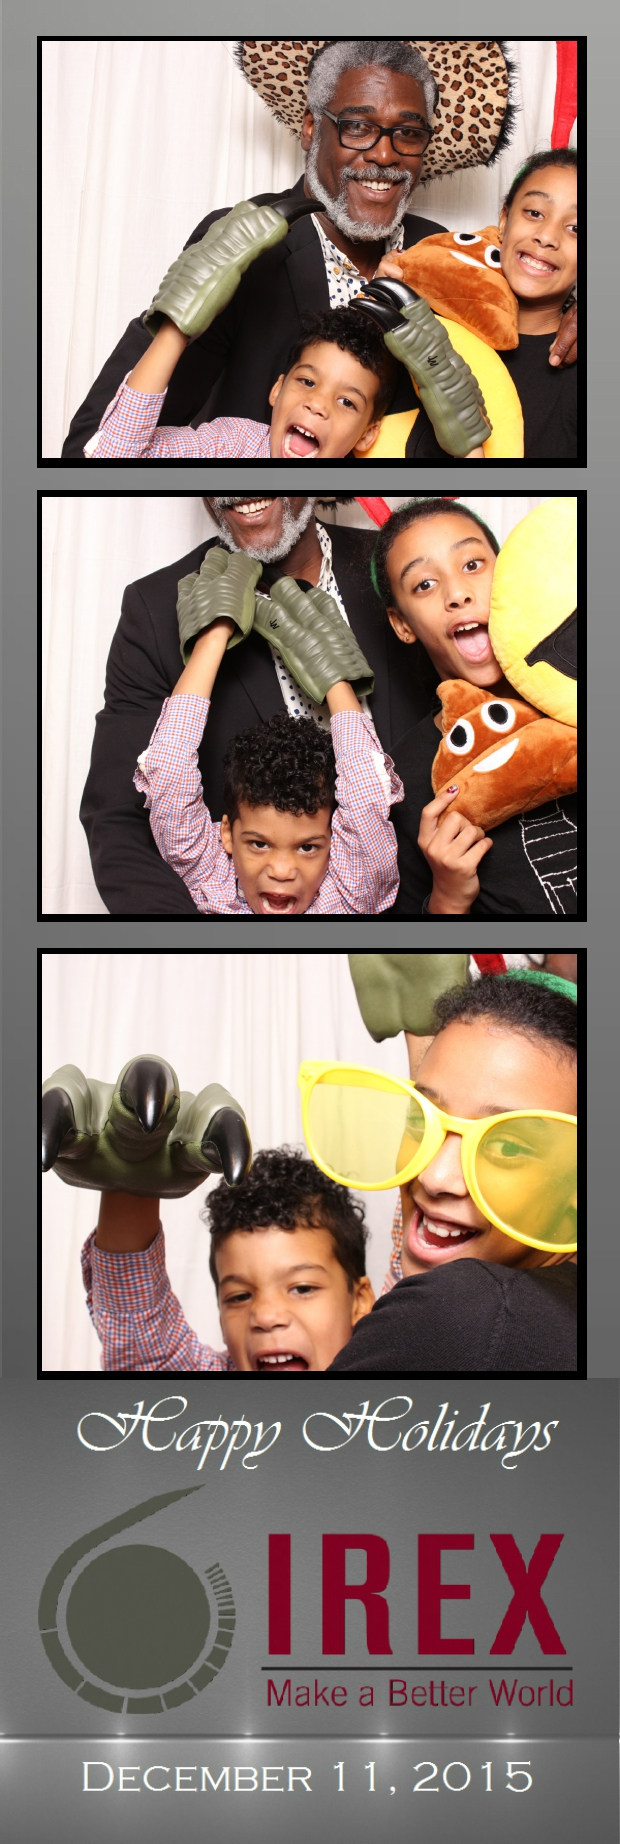 Guest House Events Photo Booth Strips IREX (20).jpg